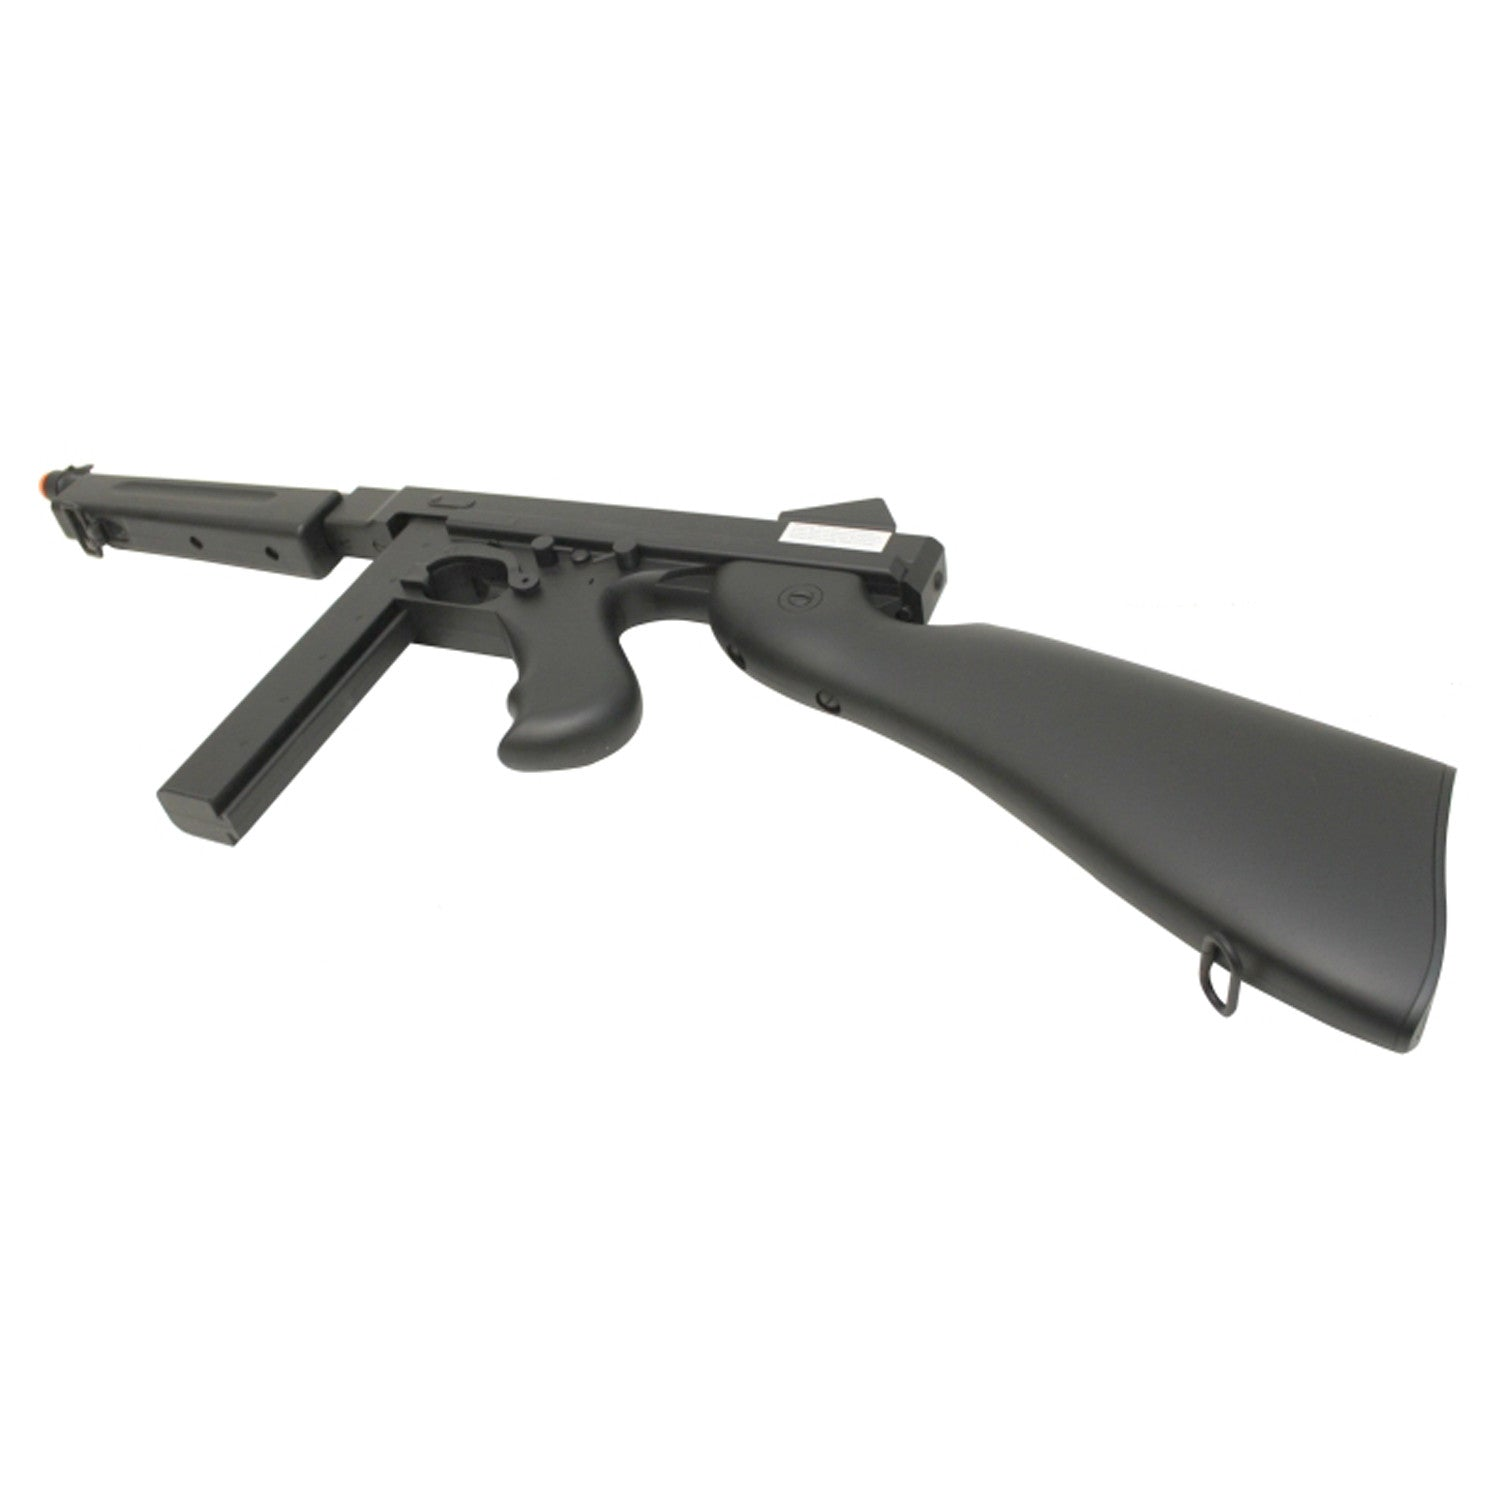 Black Thompson M1A1 with Stick Mag